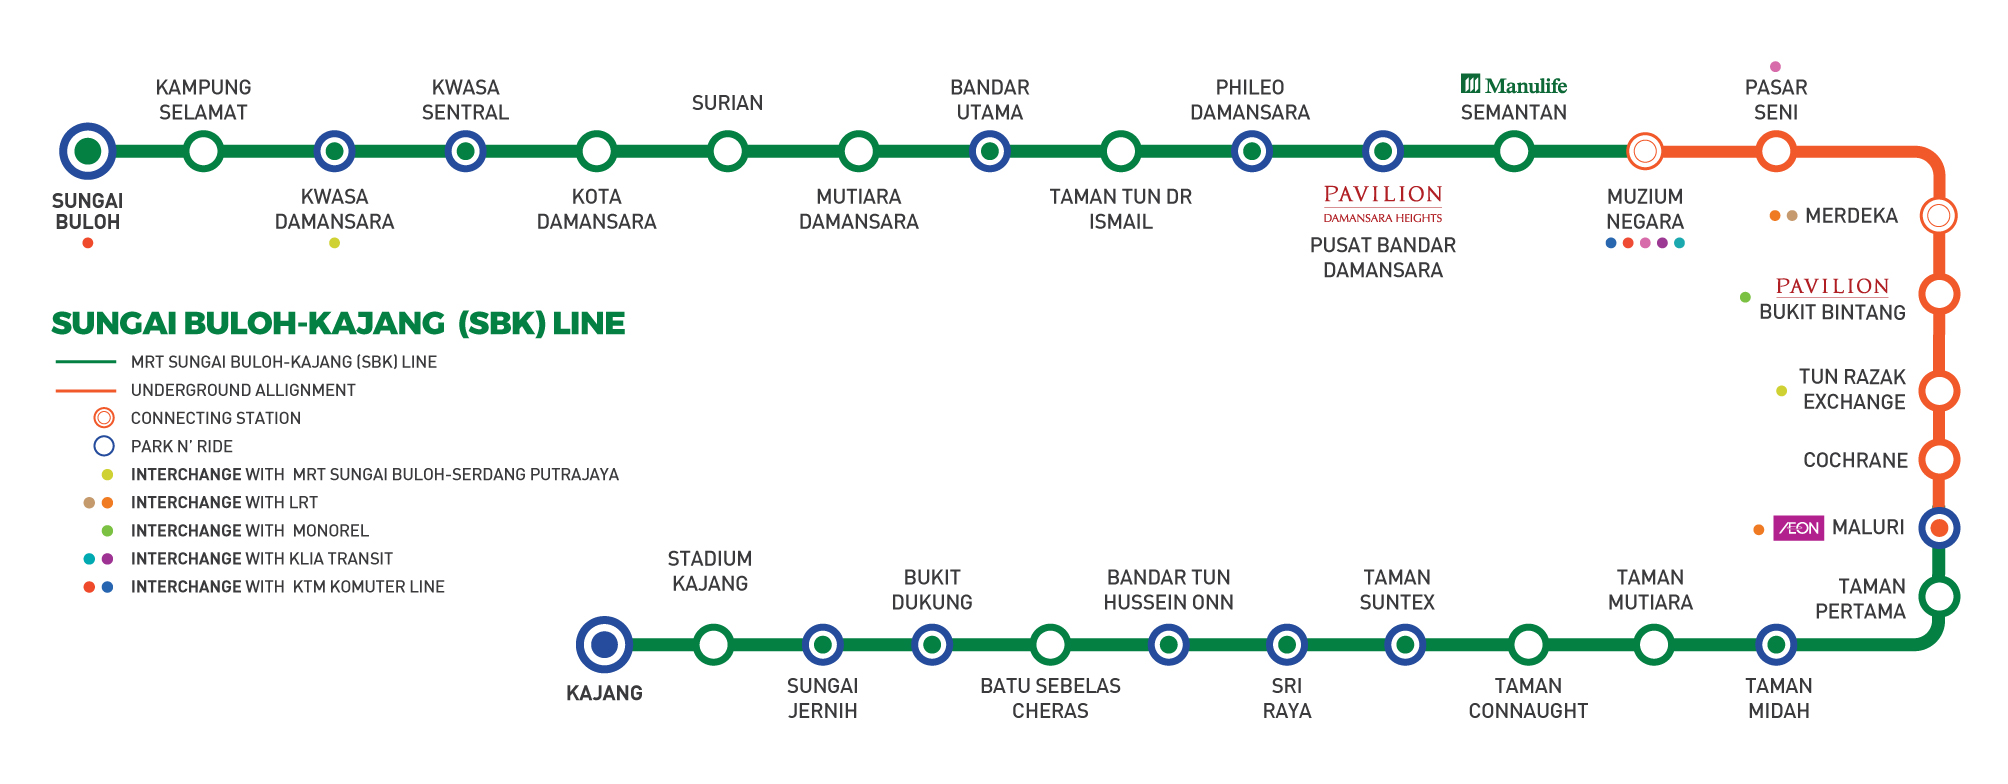 MRT Sungai Buloh – Kajang Line, 51km MRT line with 31 stations from ...